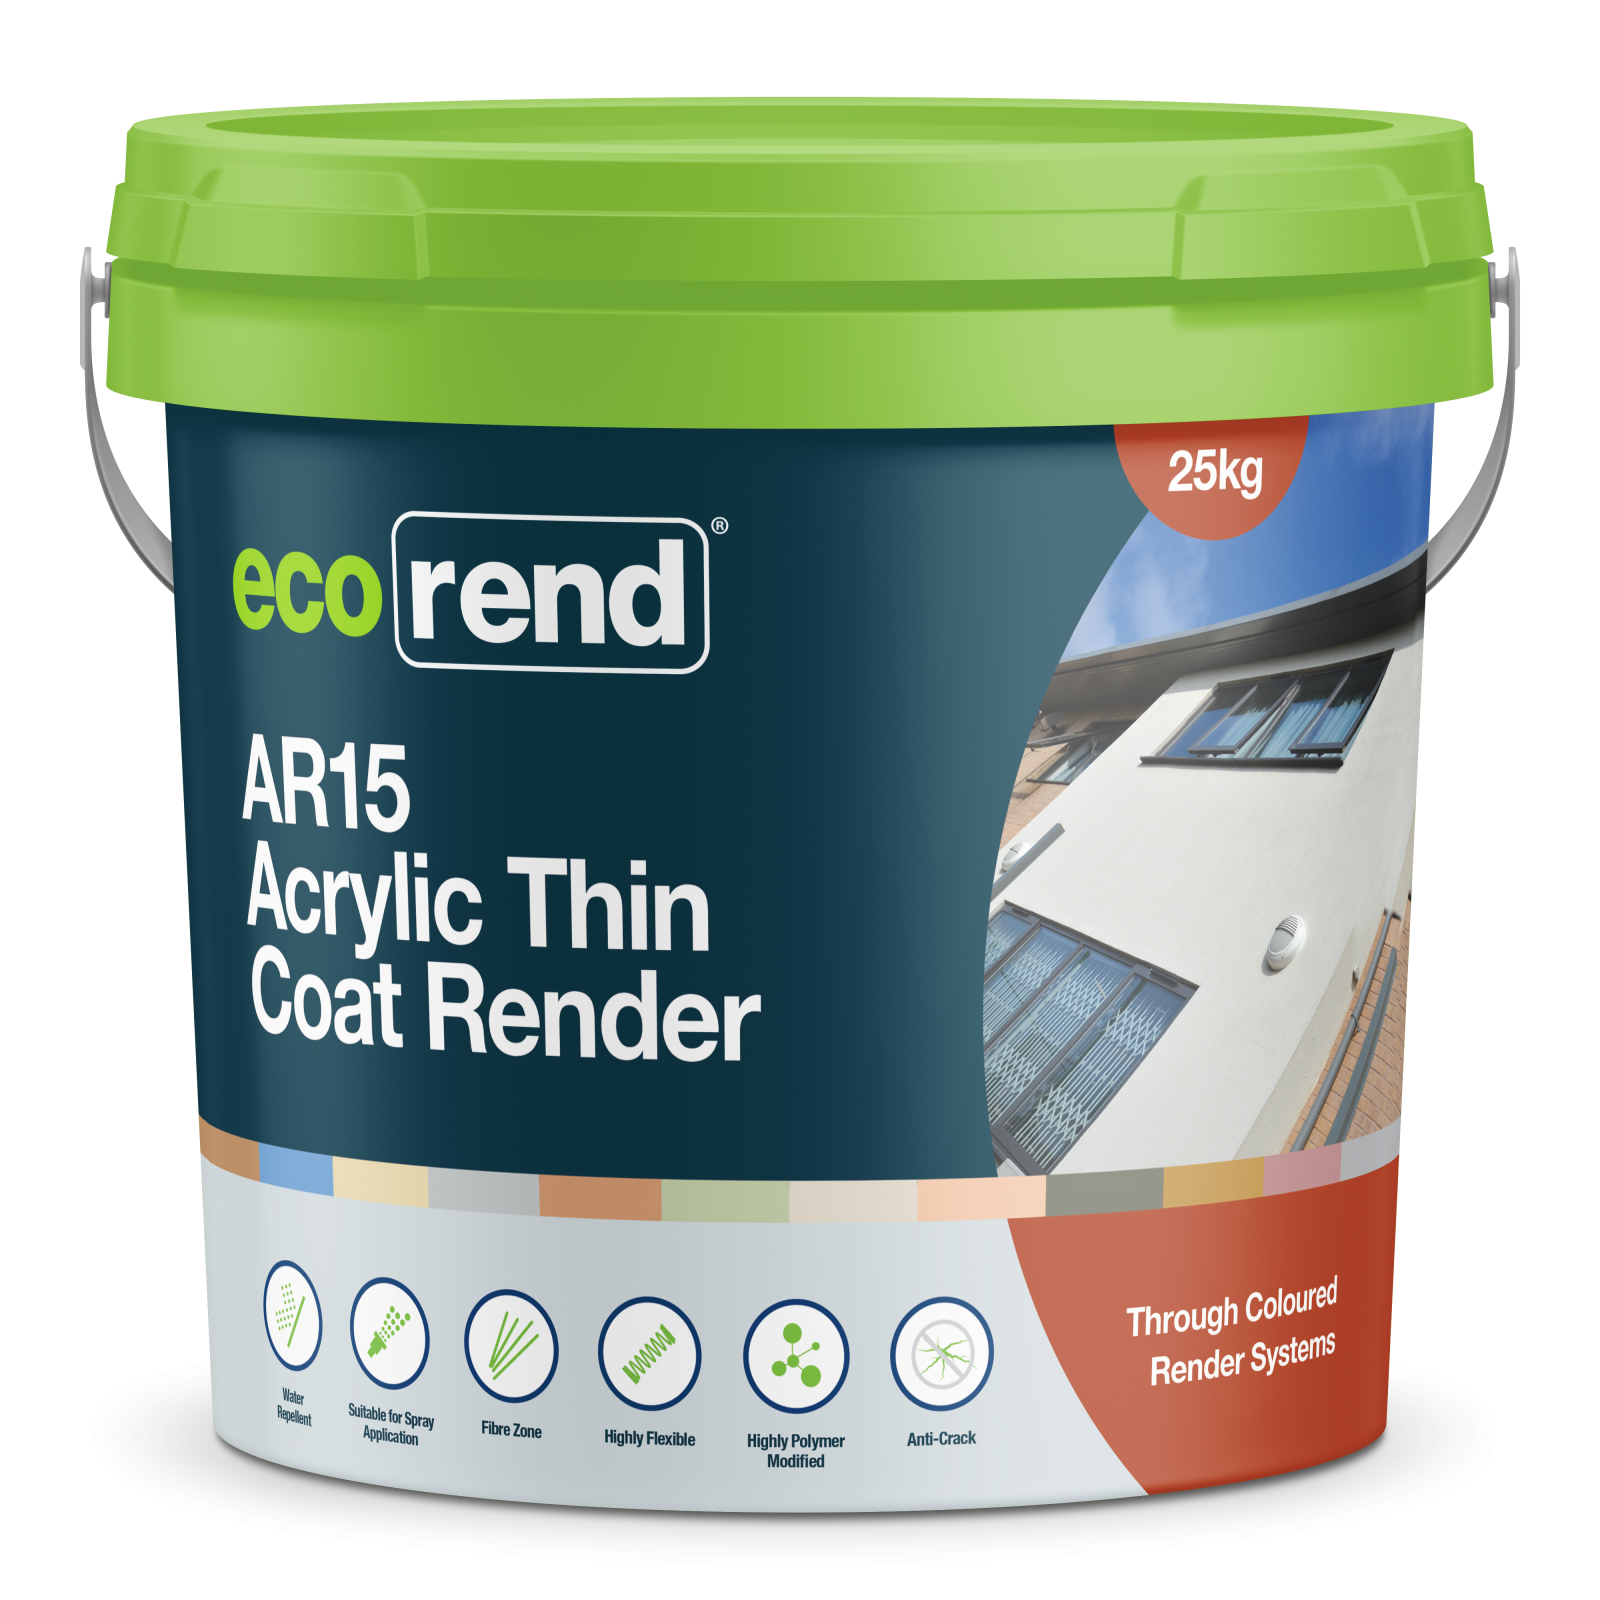 ecorend ar15 acrylic thin coat render 25kg tub